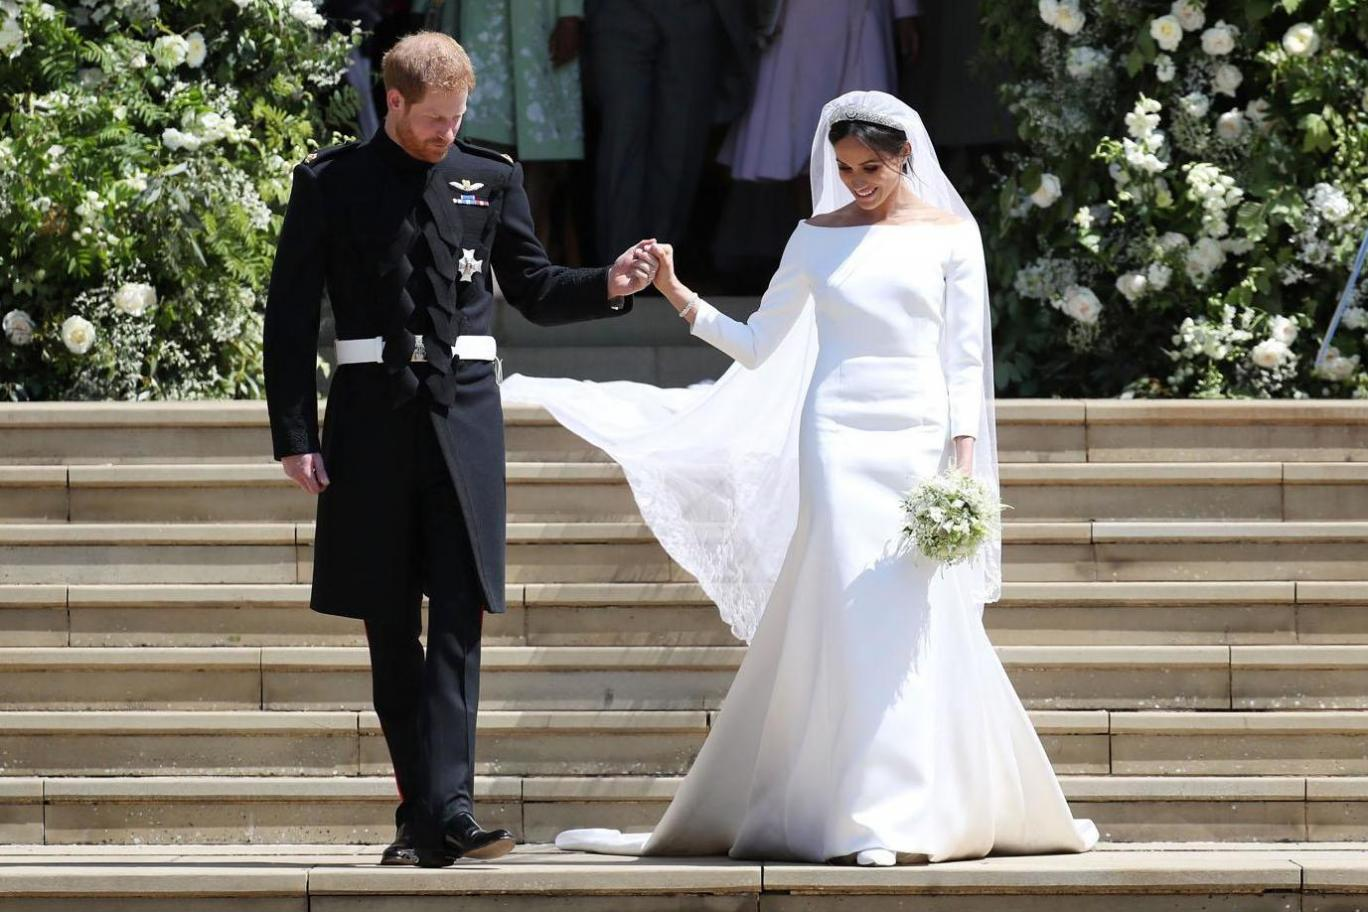 """Mairead McArdle on Twitter: """"#MeghanMarkle's dress is almost identical to that of the only other European princess bride with African heritage, Princess Angela of Liechtenstein ❤ #RoyalWedding… https://t.co/mntJLrJeT0"""""""